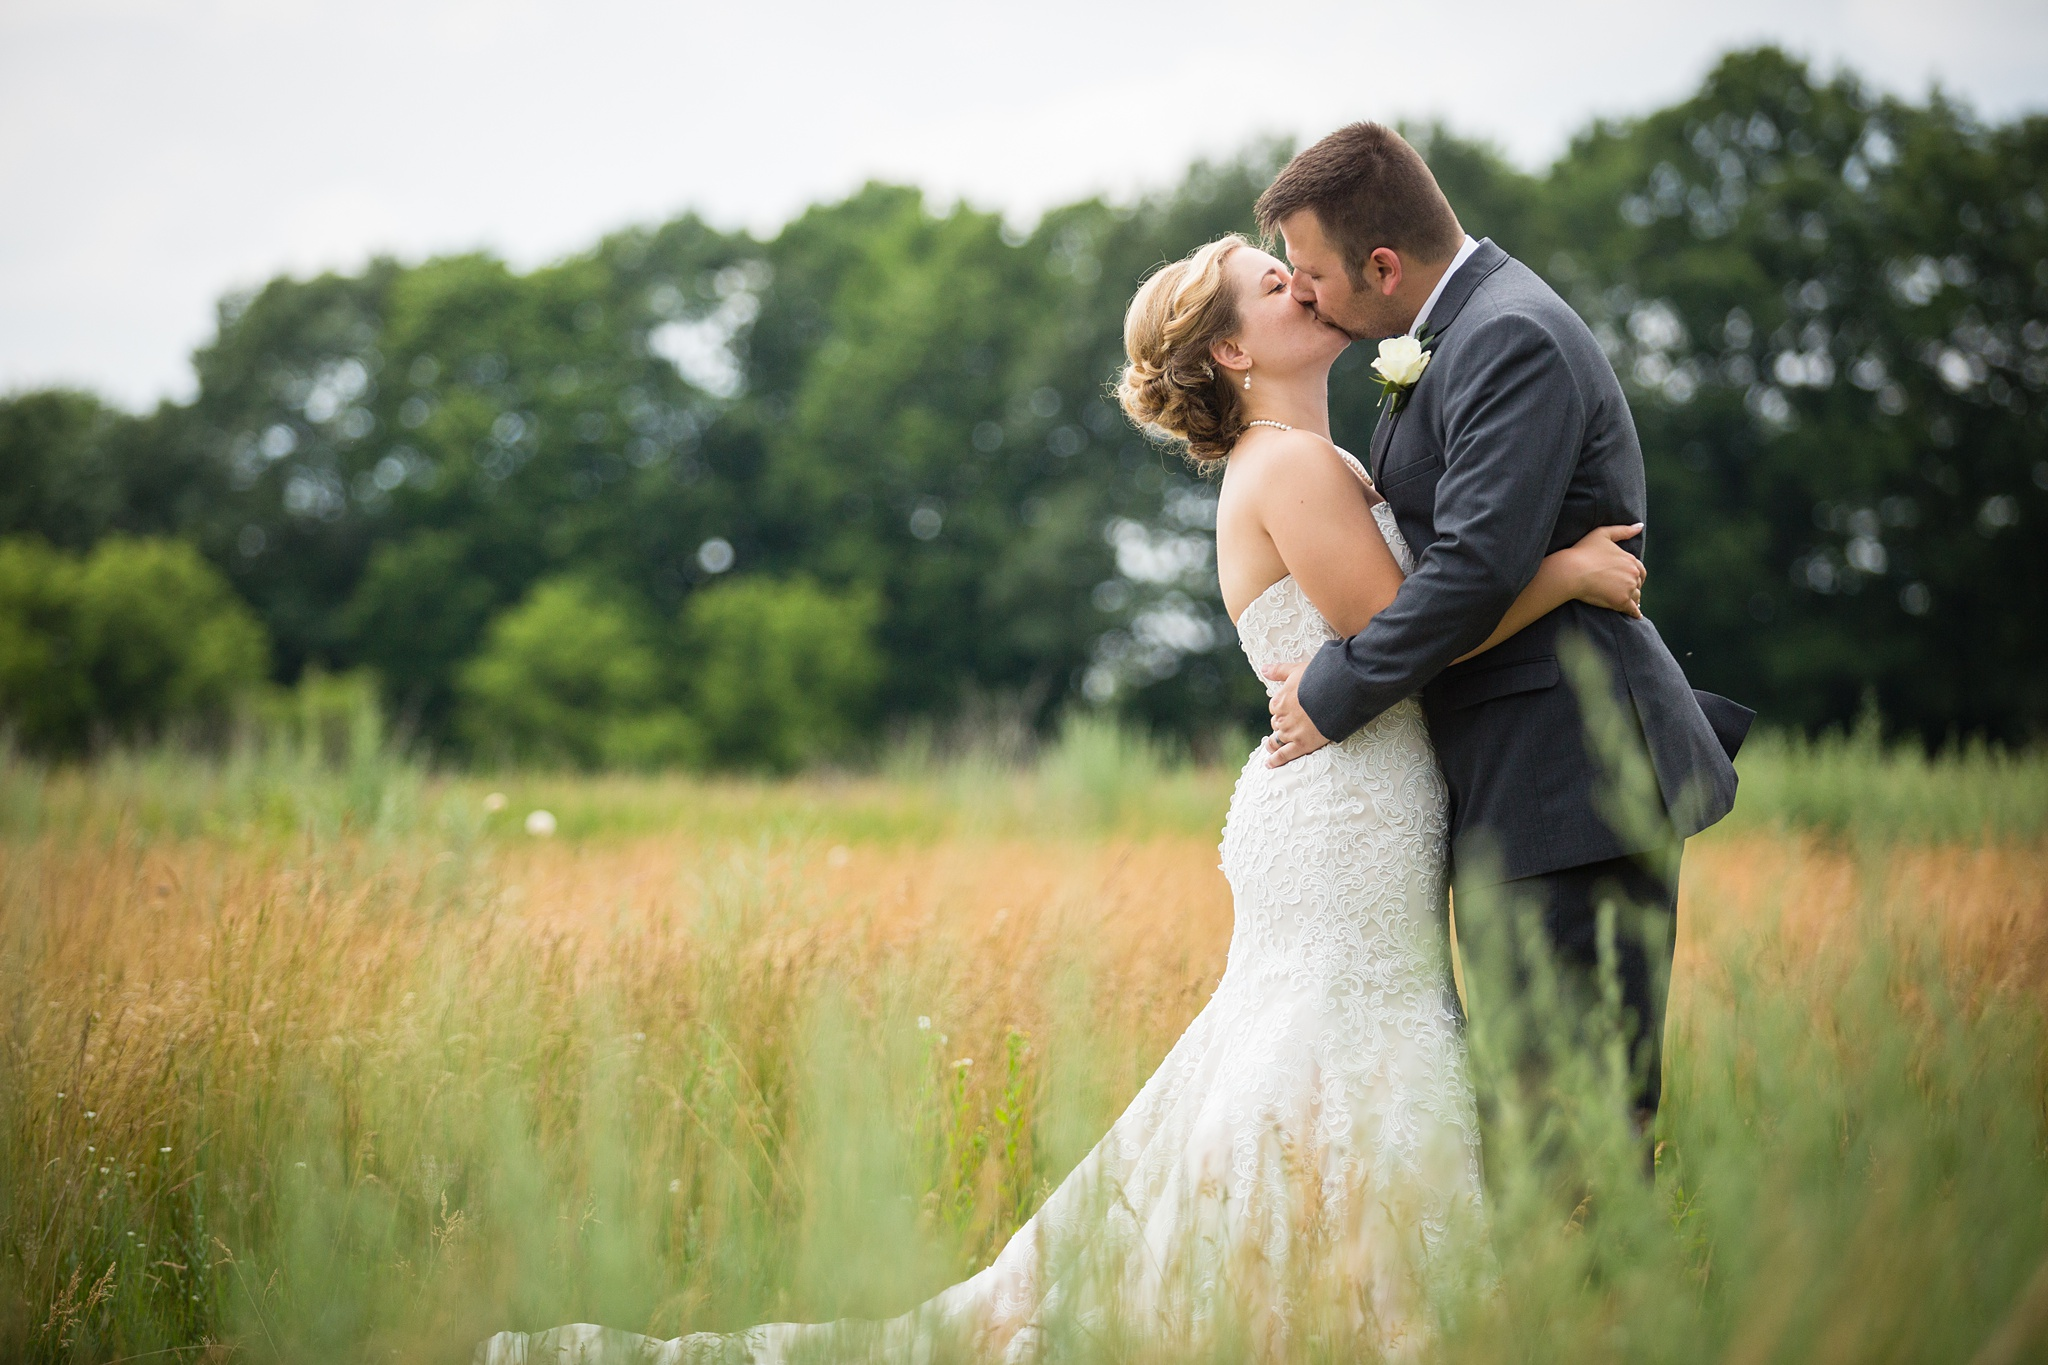 Brandon_Shafer_Photography_Grand_Rapids_Bride_Groom_0032.jpg